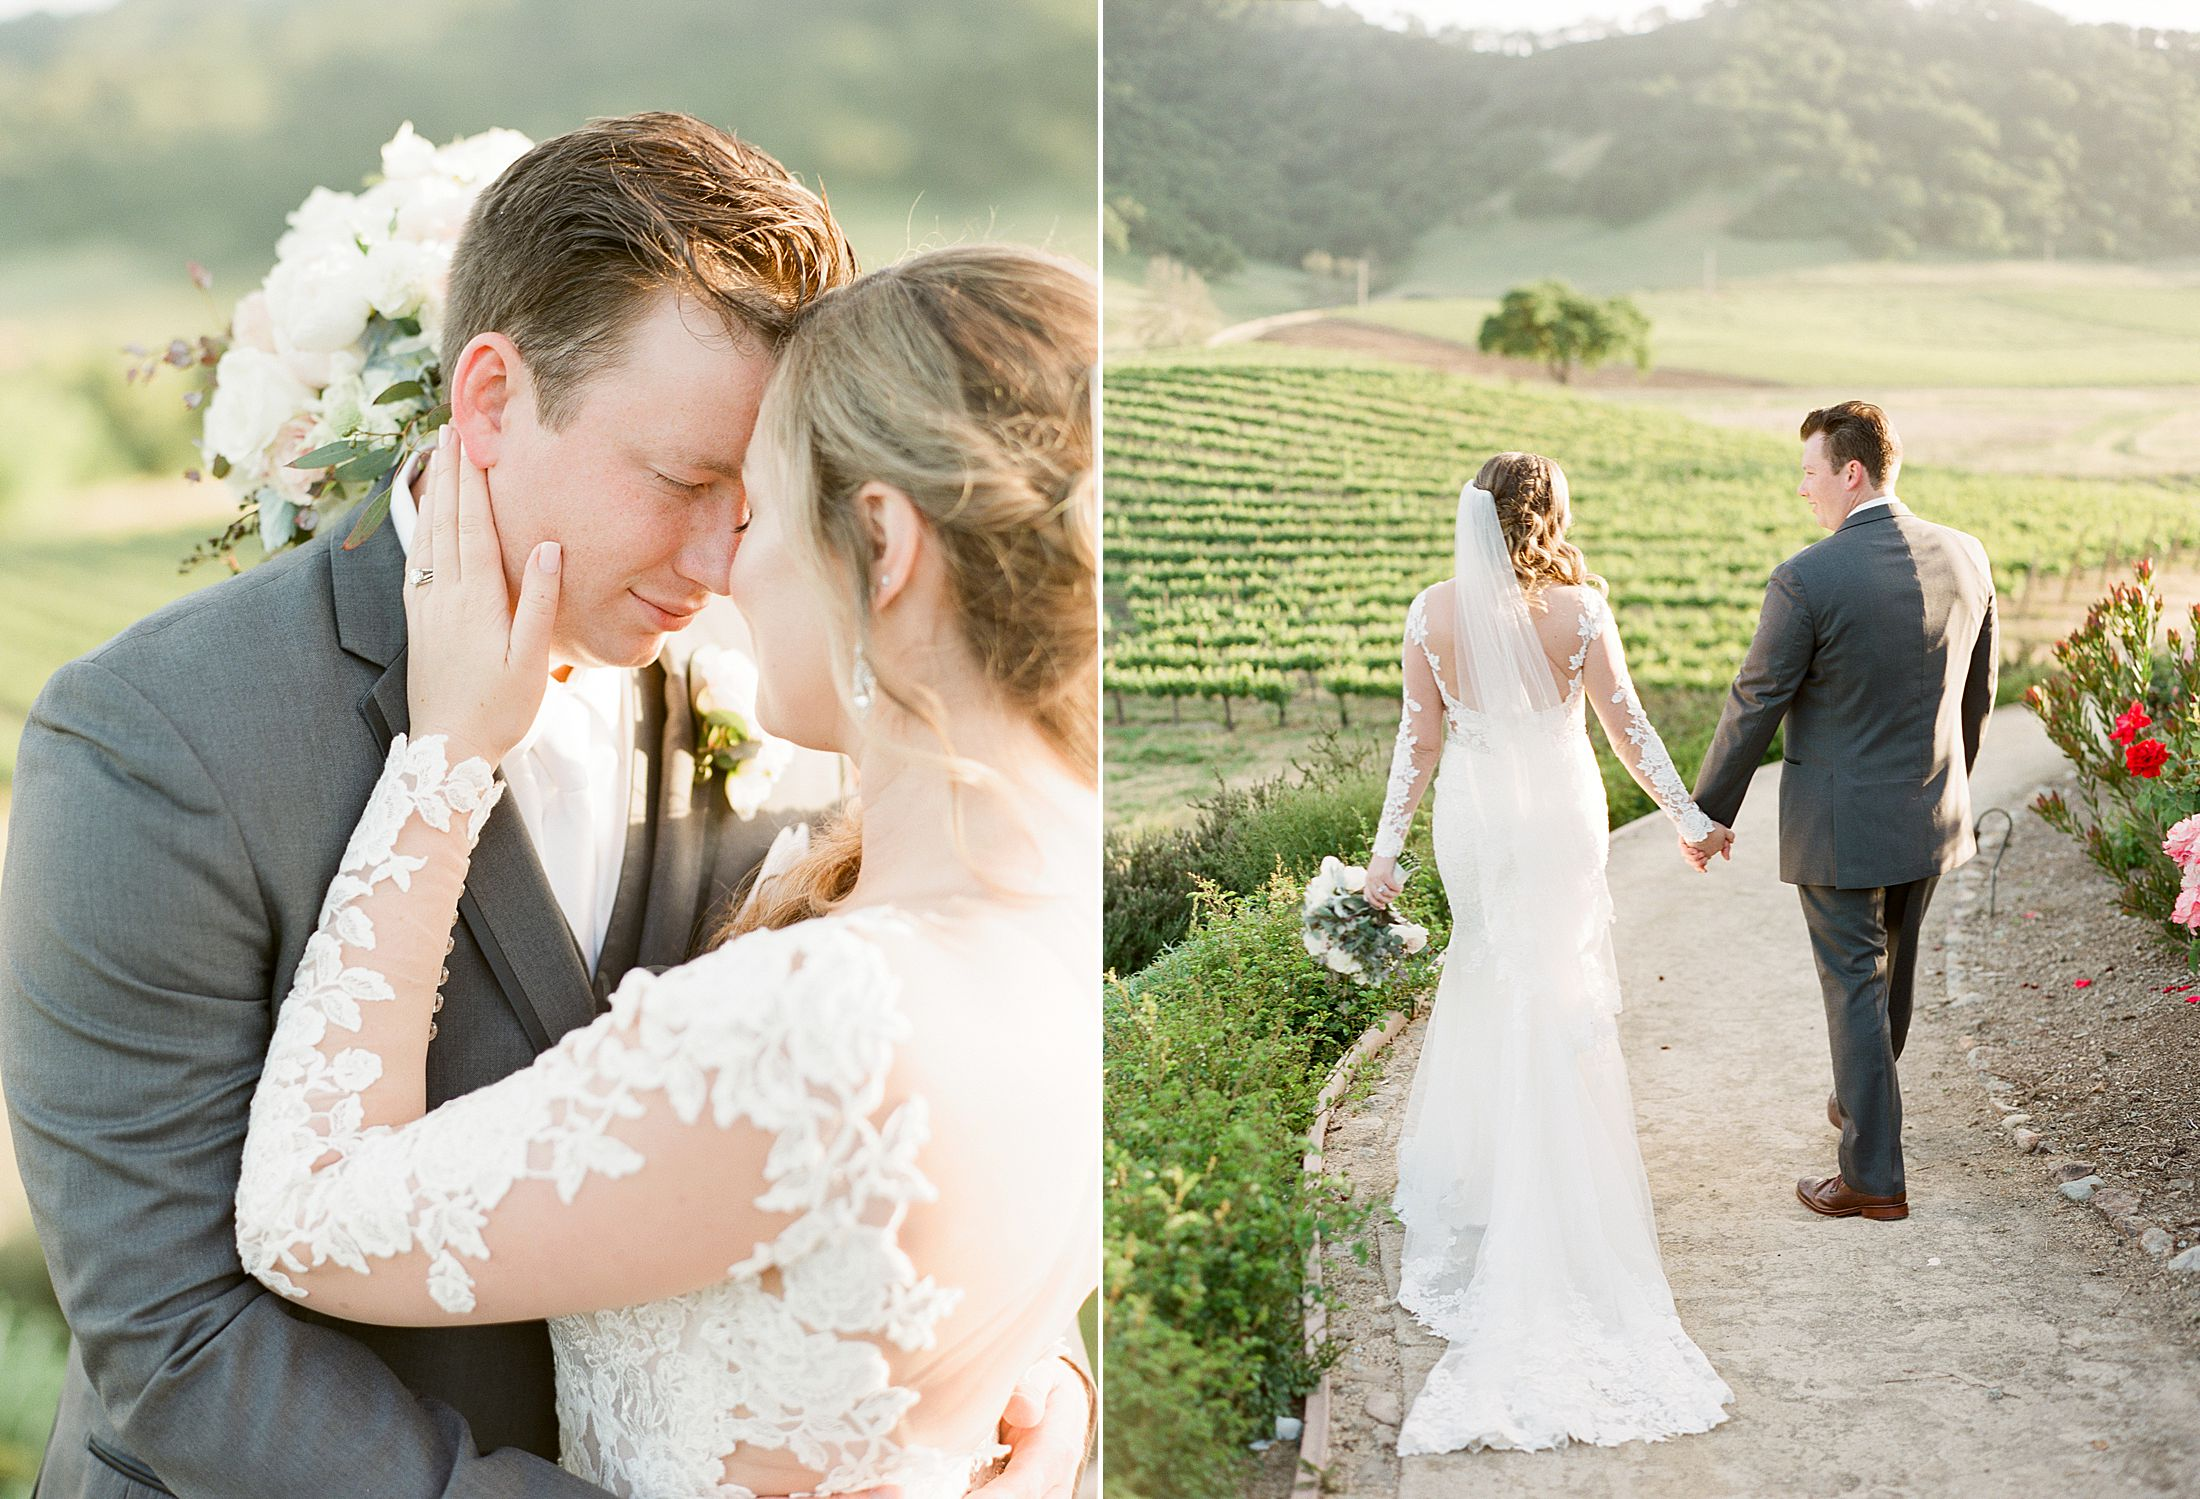 Clos LaChance Winery Wedding - Ashley Baumgartner - Kat & Kurt - Morgan Hill Wedding - Winery Wedding - Bay Area Photographer - Sacramento Wedding Photographer_0059.jpg